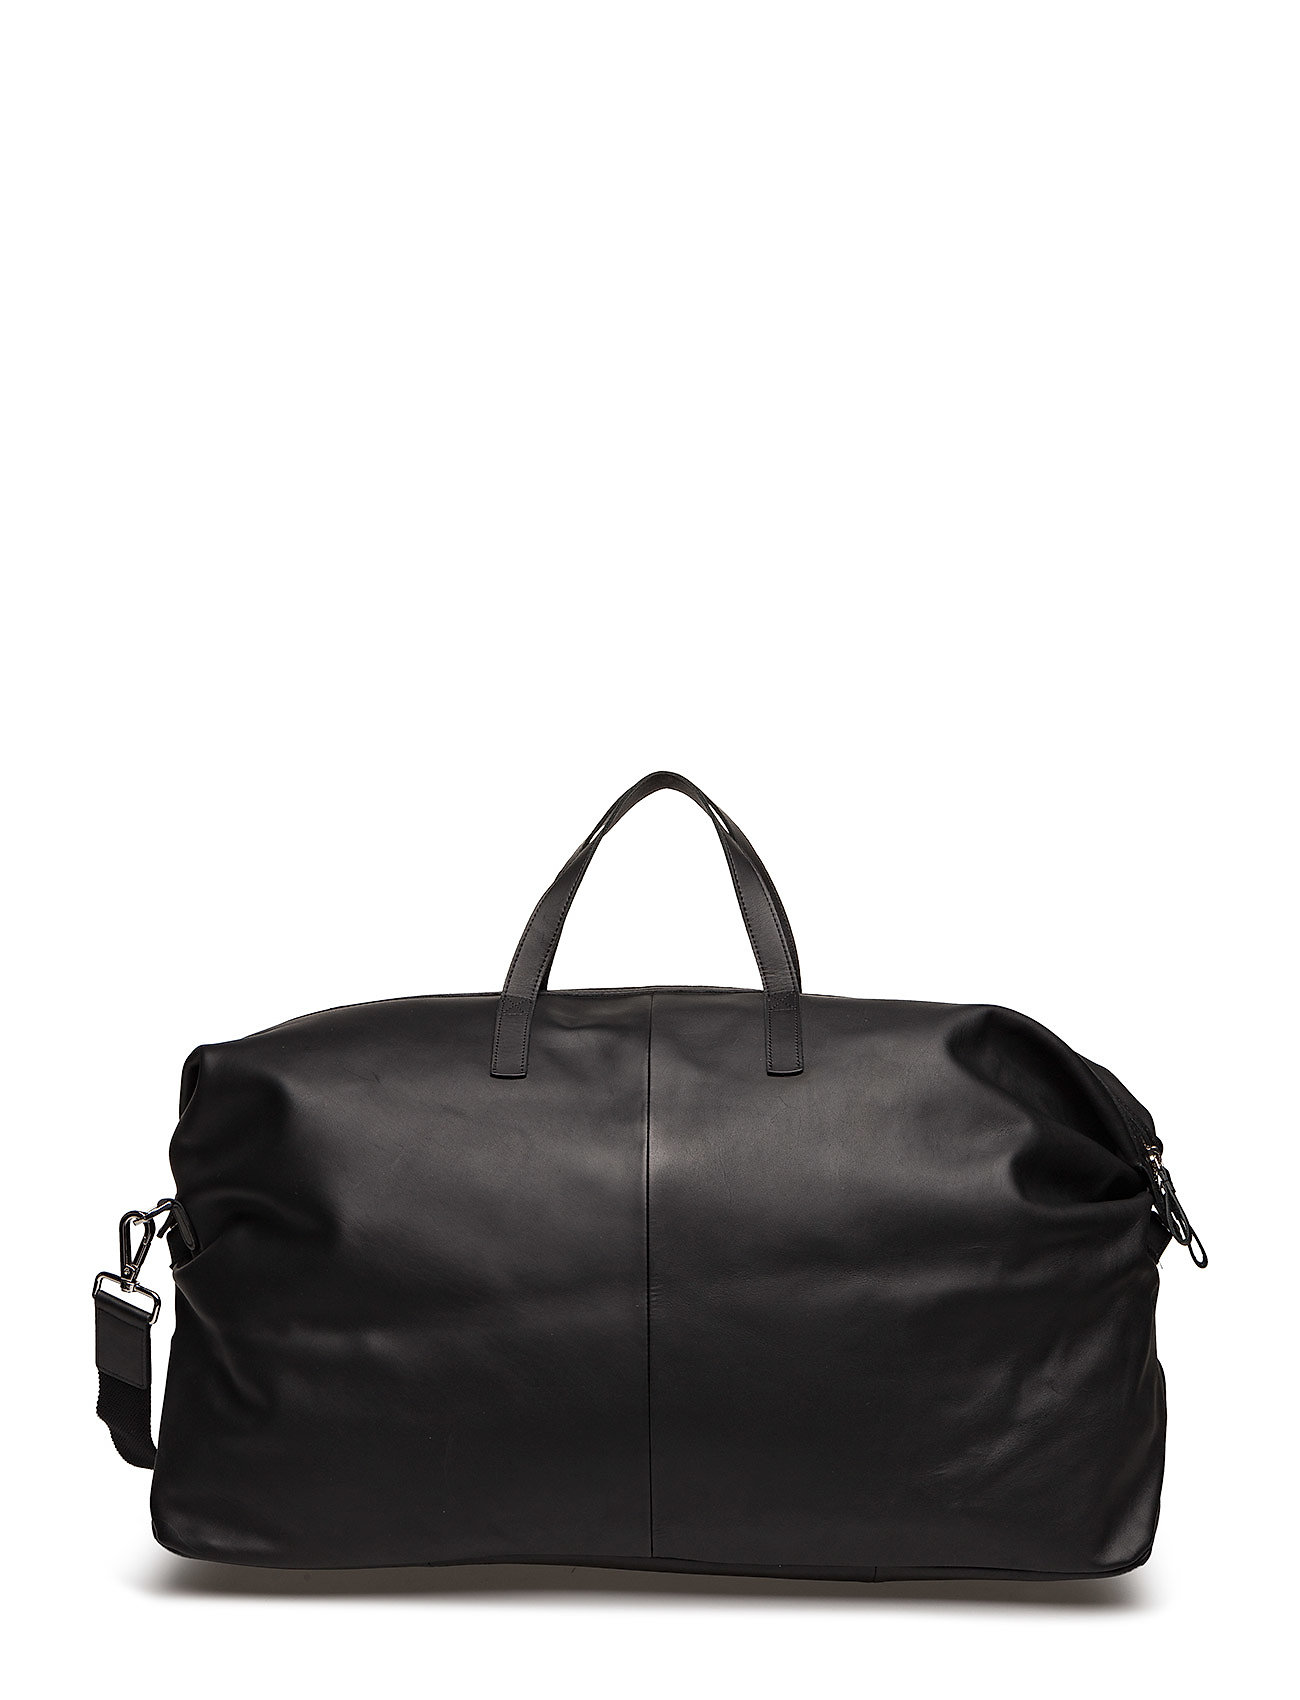 Damien Leather Bags Weekend & Gym Bags Sort SANDQVIST